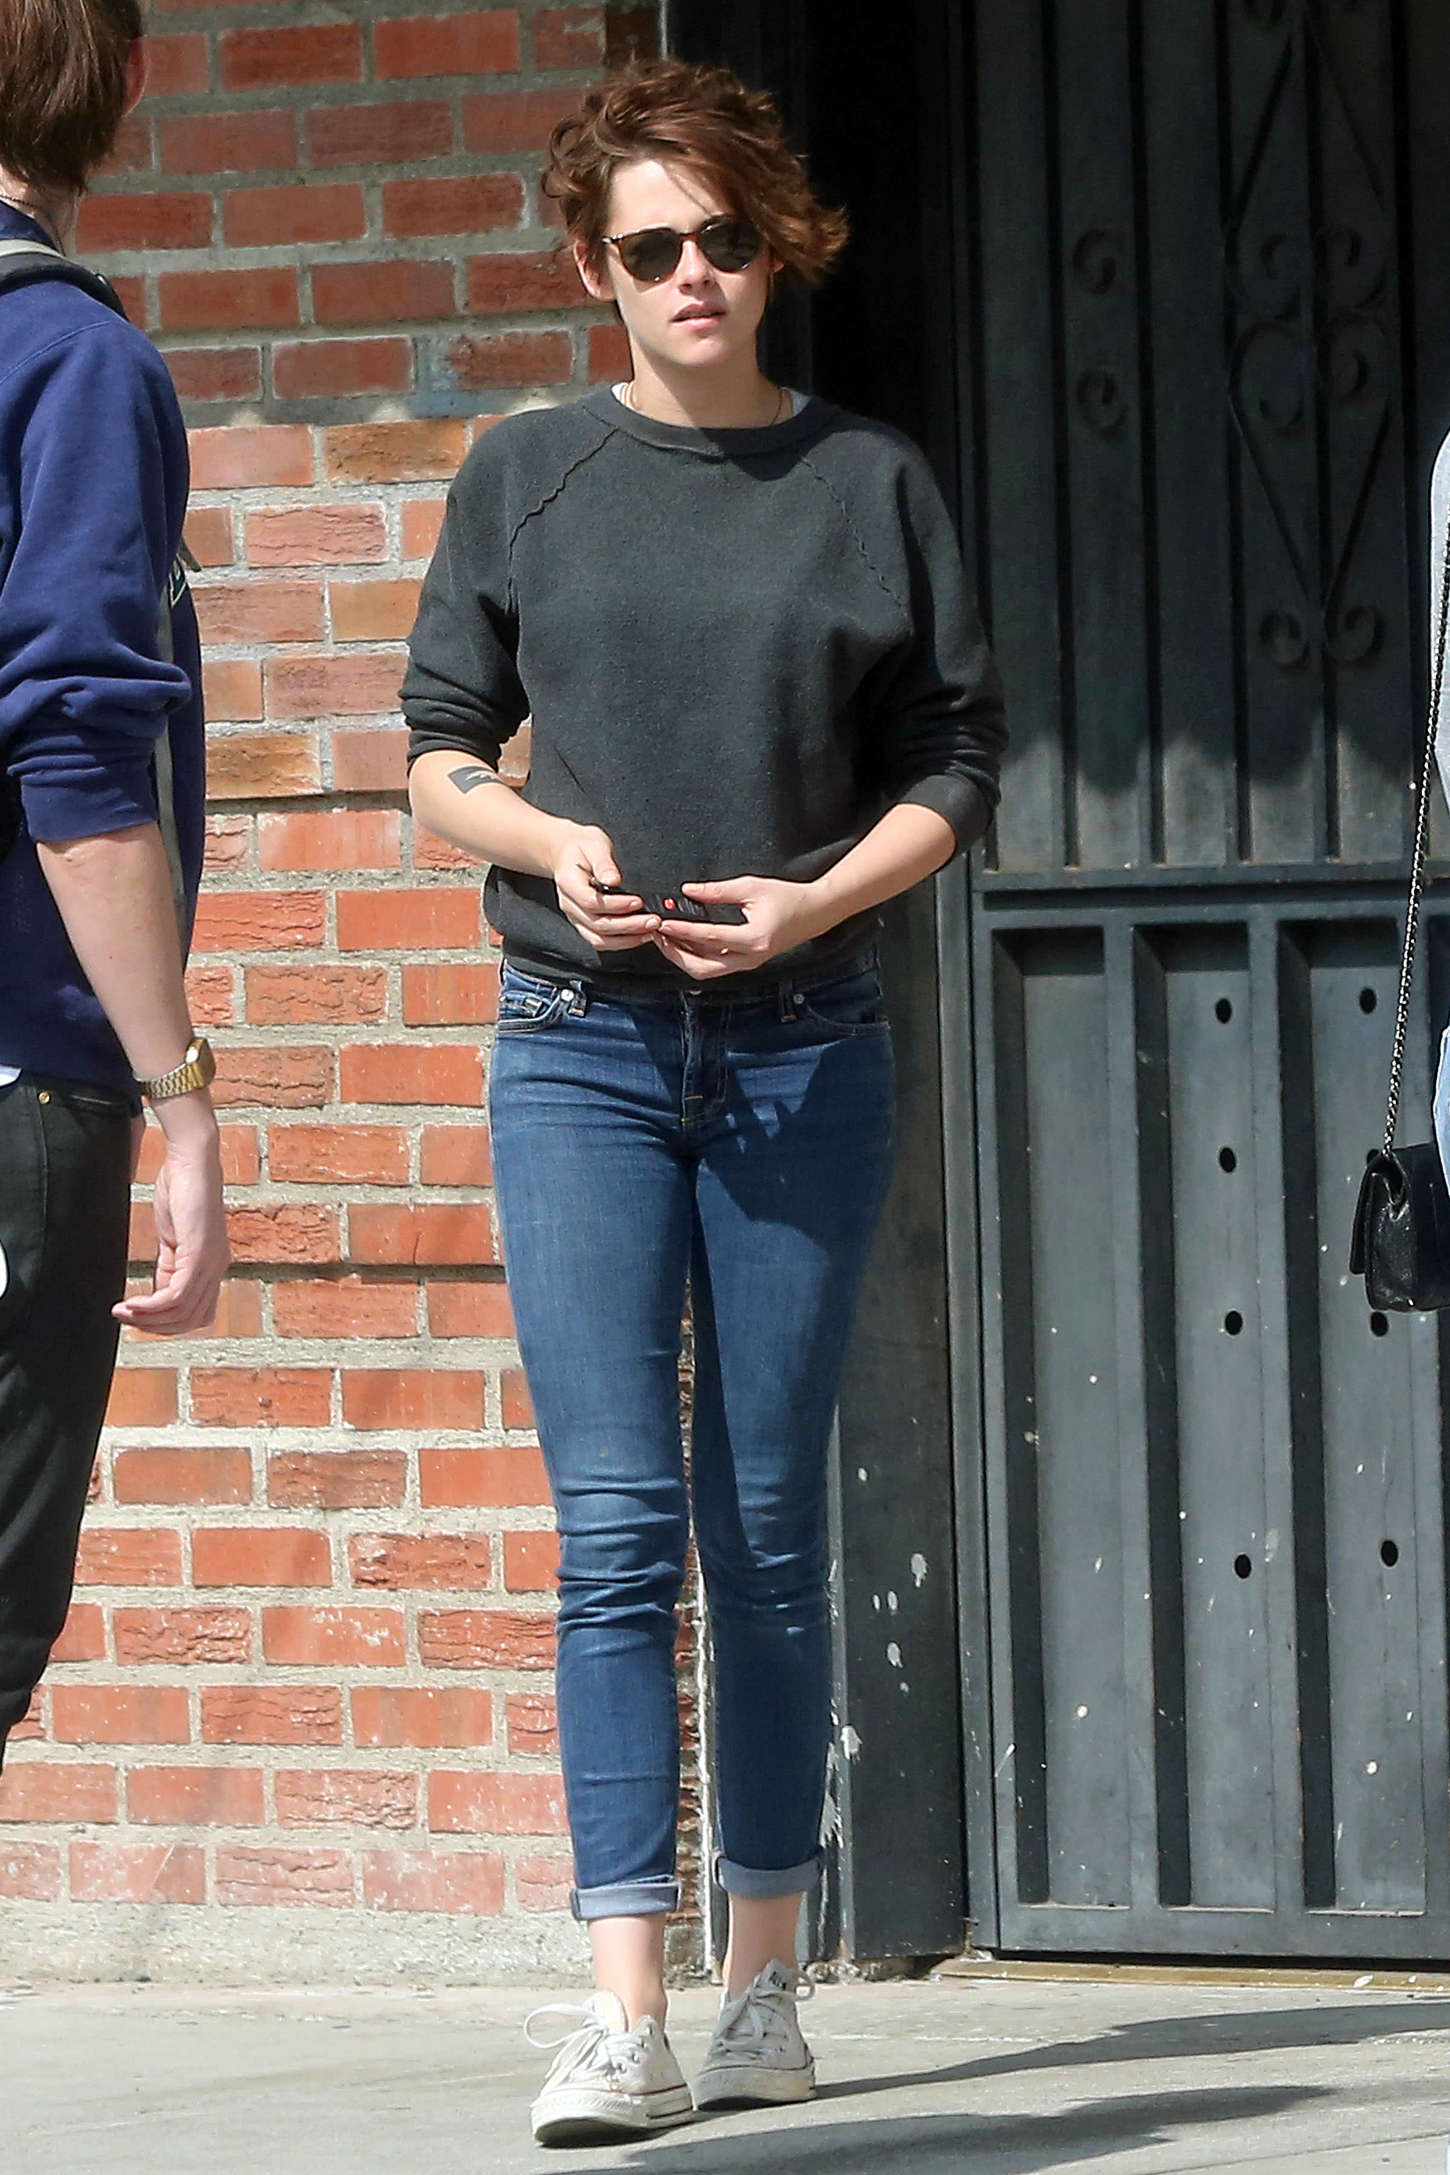 Kristen Stewart In Tight Jeans Out With Friends 01 Gotceleb